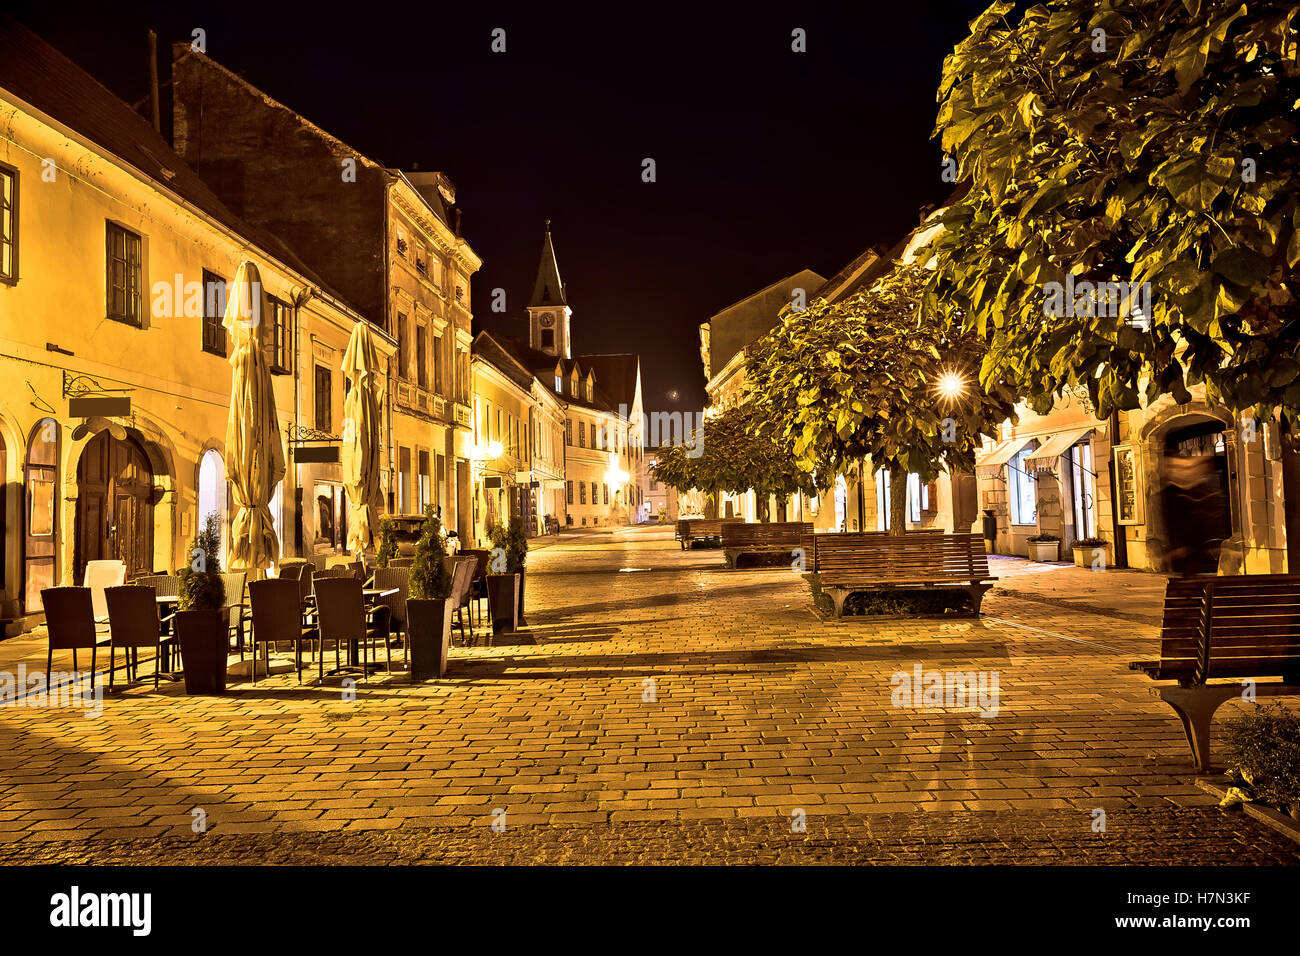 Varazdin baroque old street evening view, northern Croatia - Stock Image